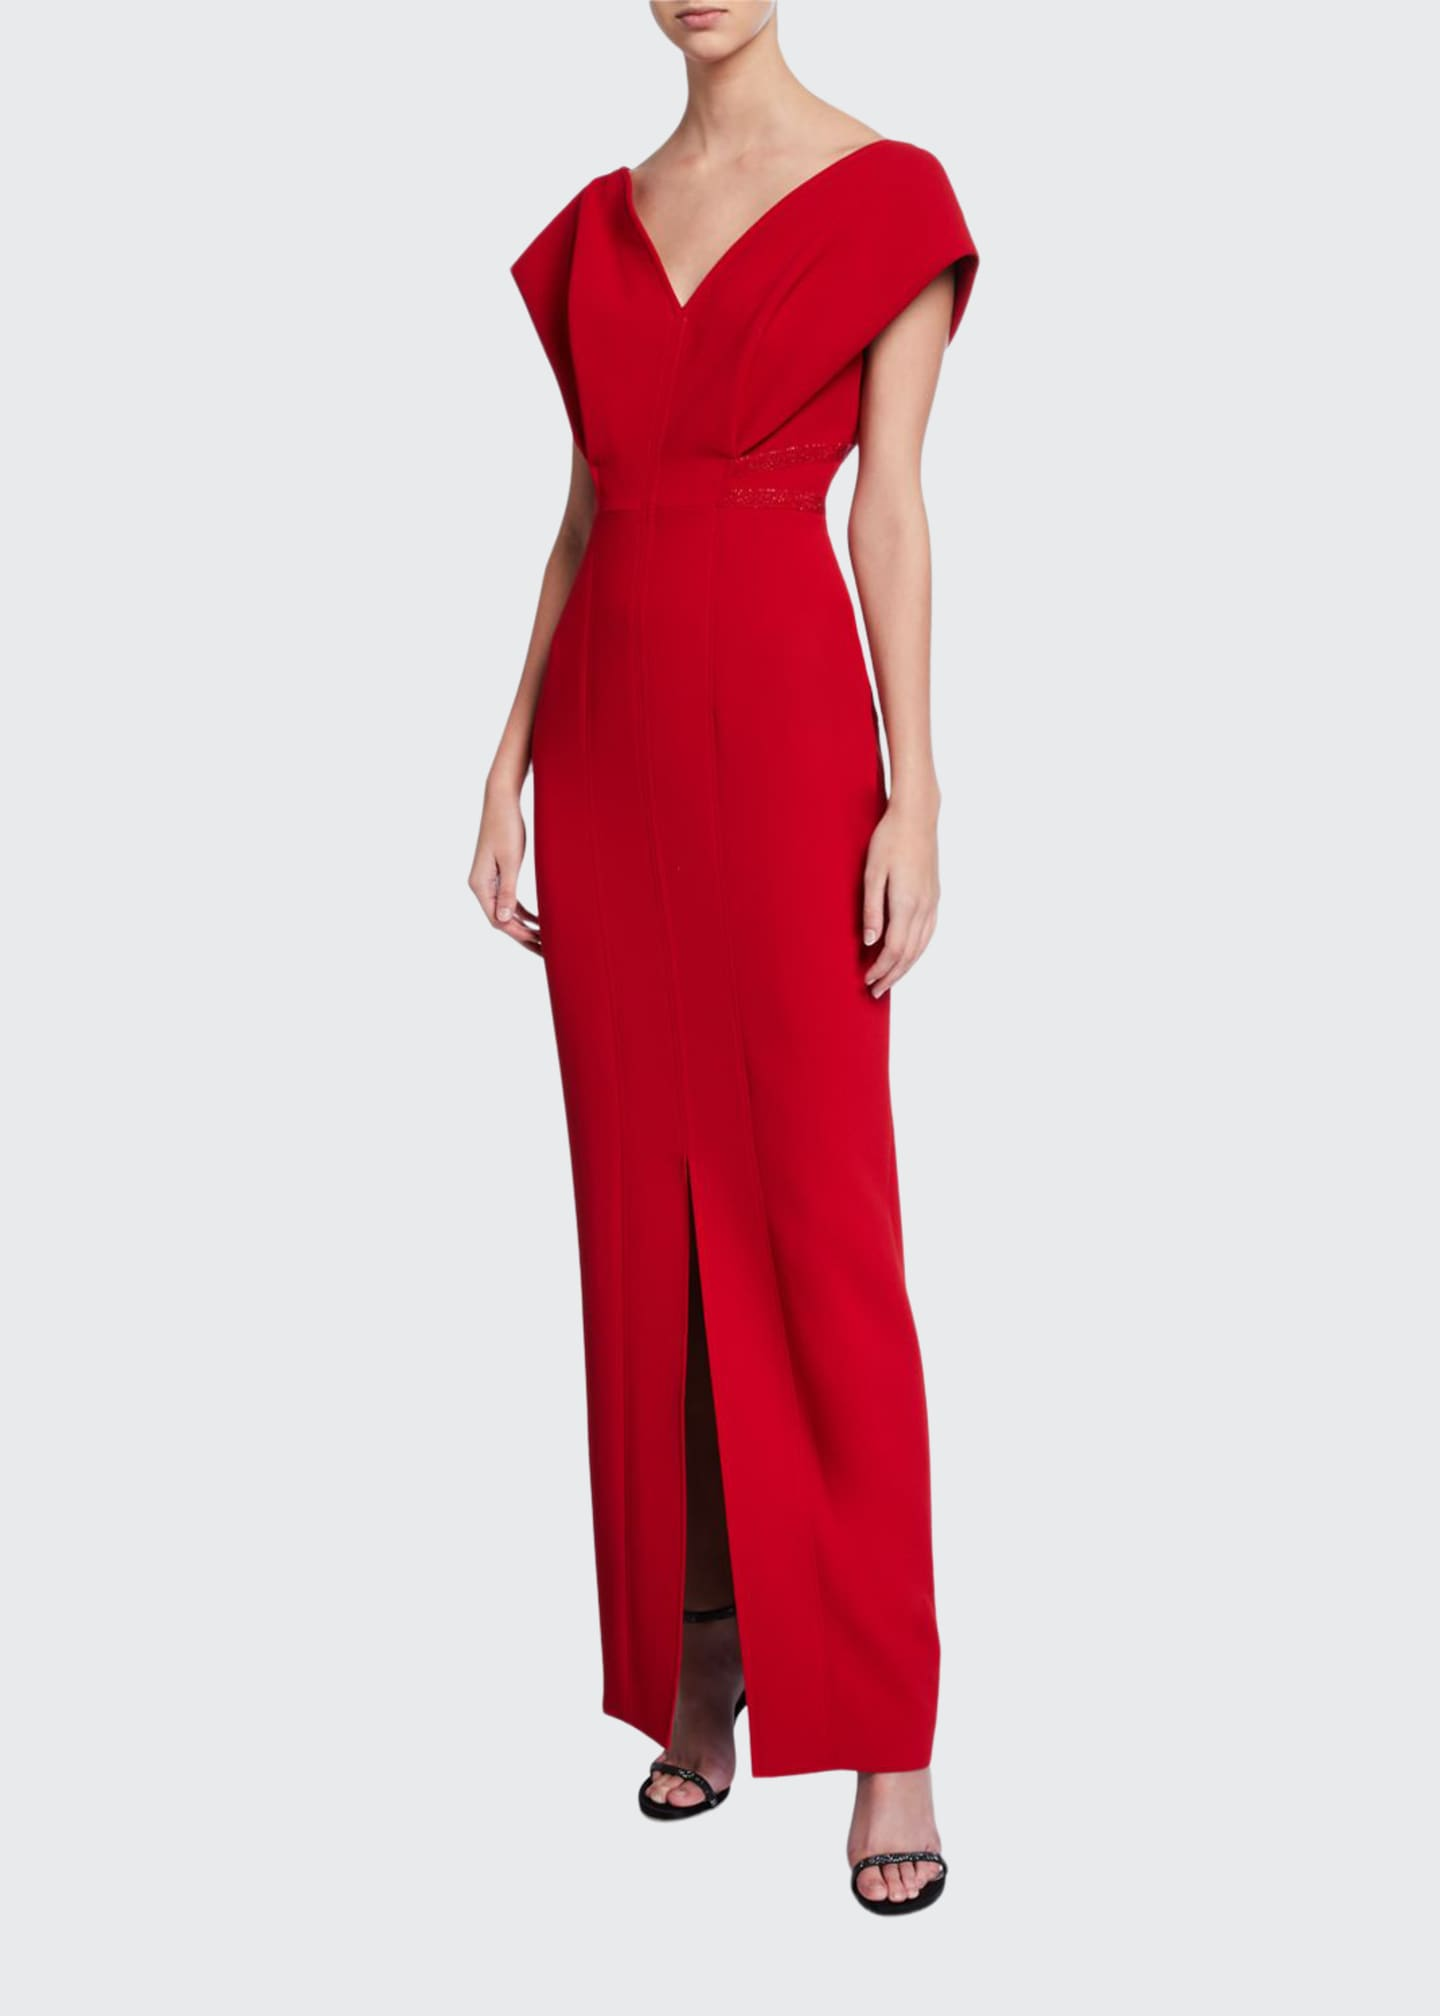 Atelier Caito for Herve Pierre V-Neck Cap-Sleeve Gown